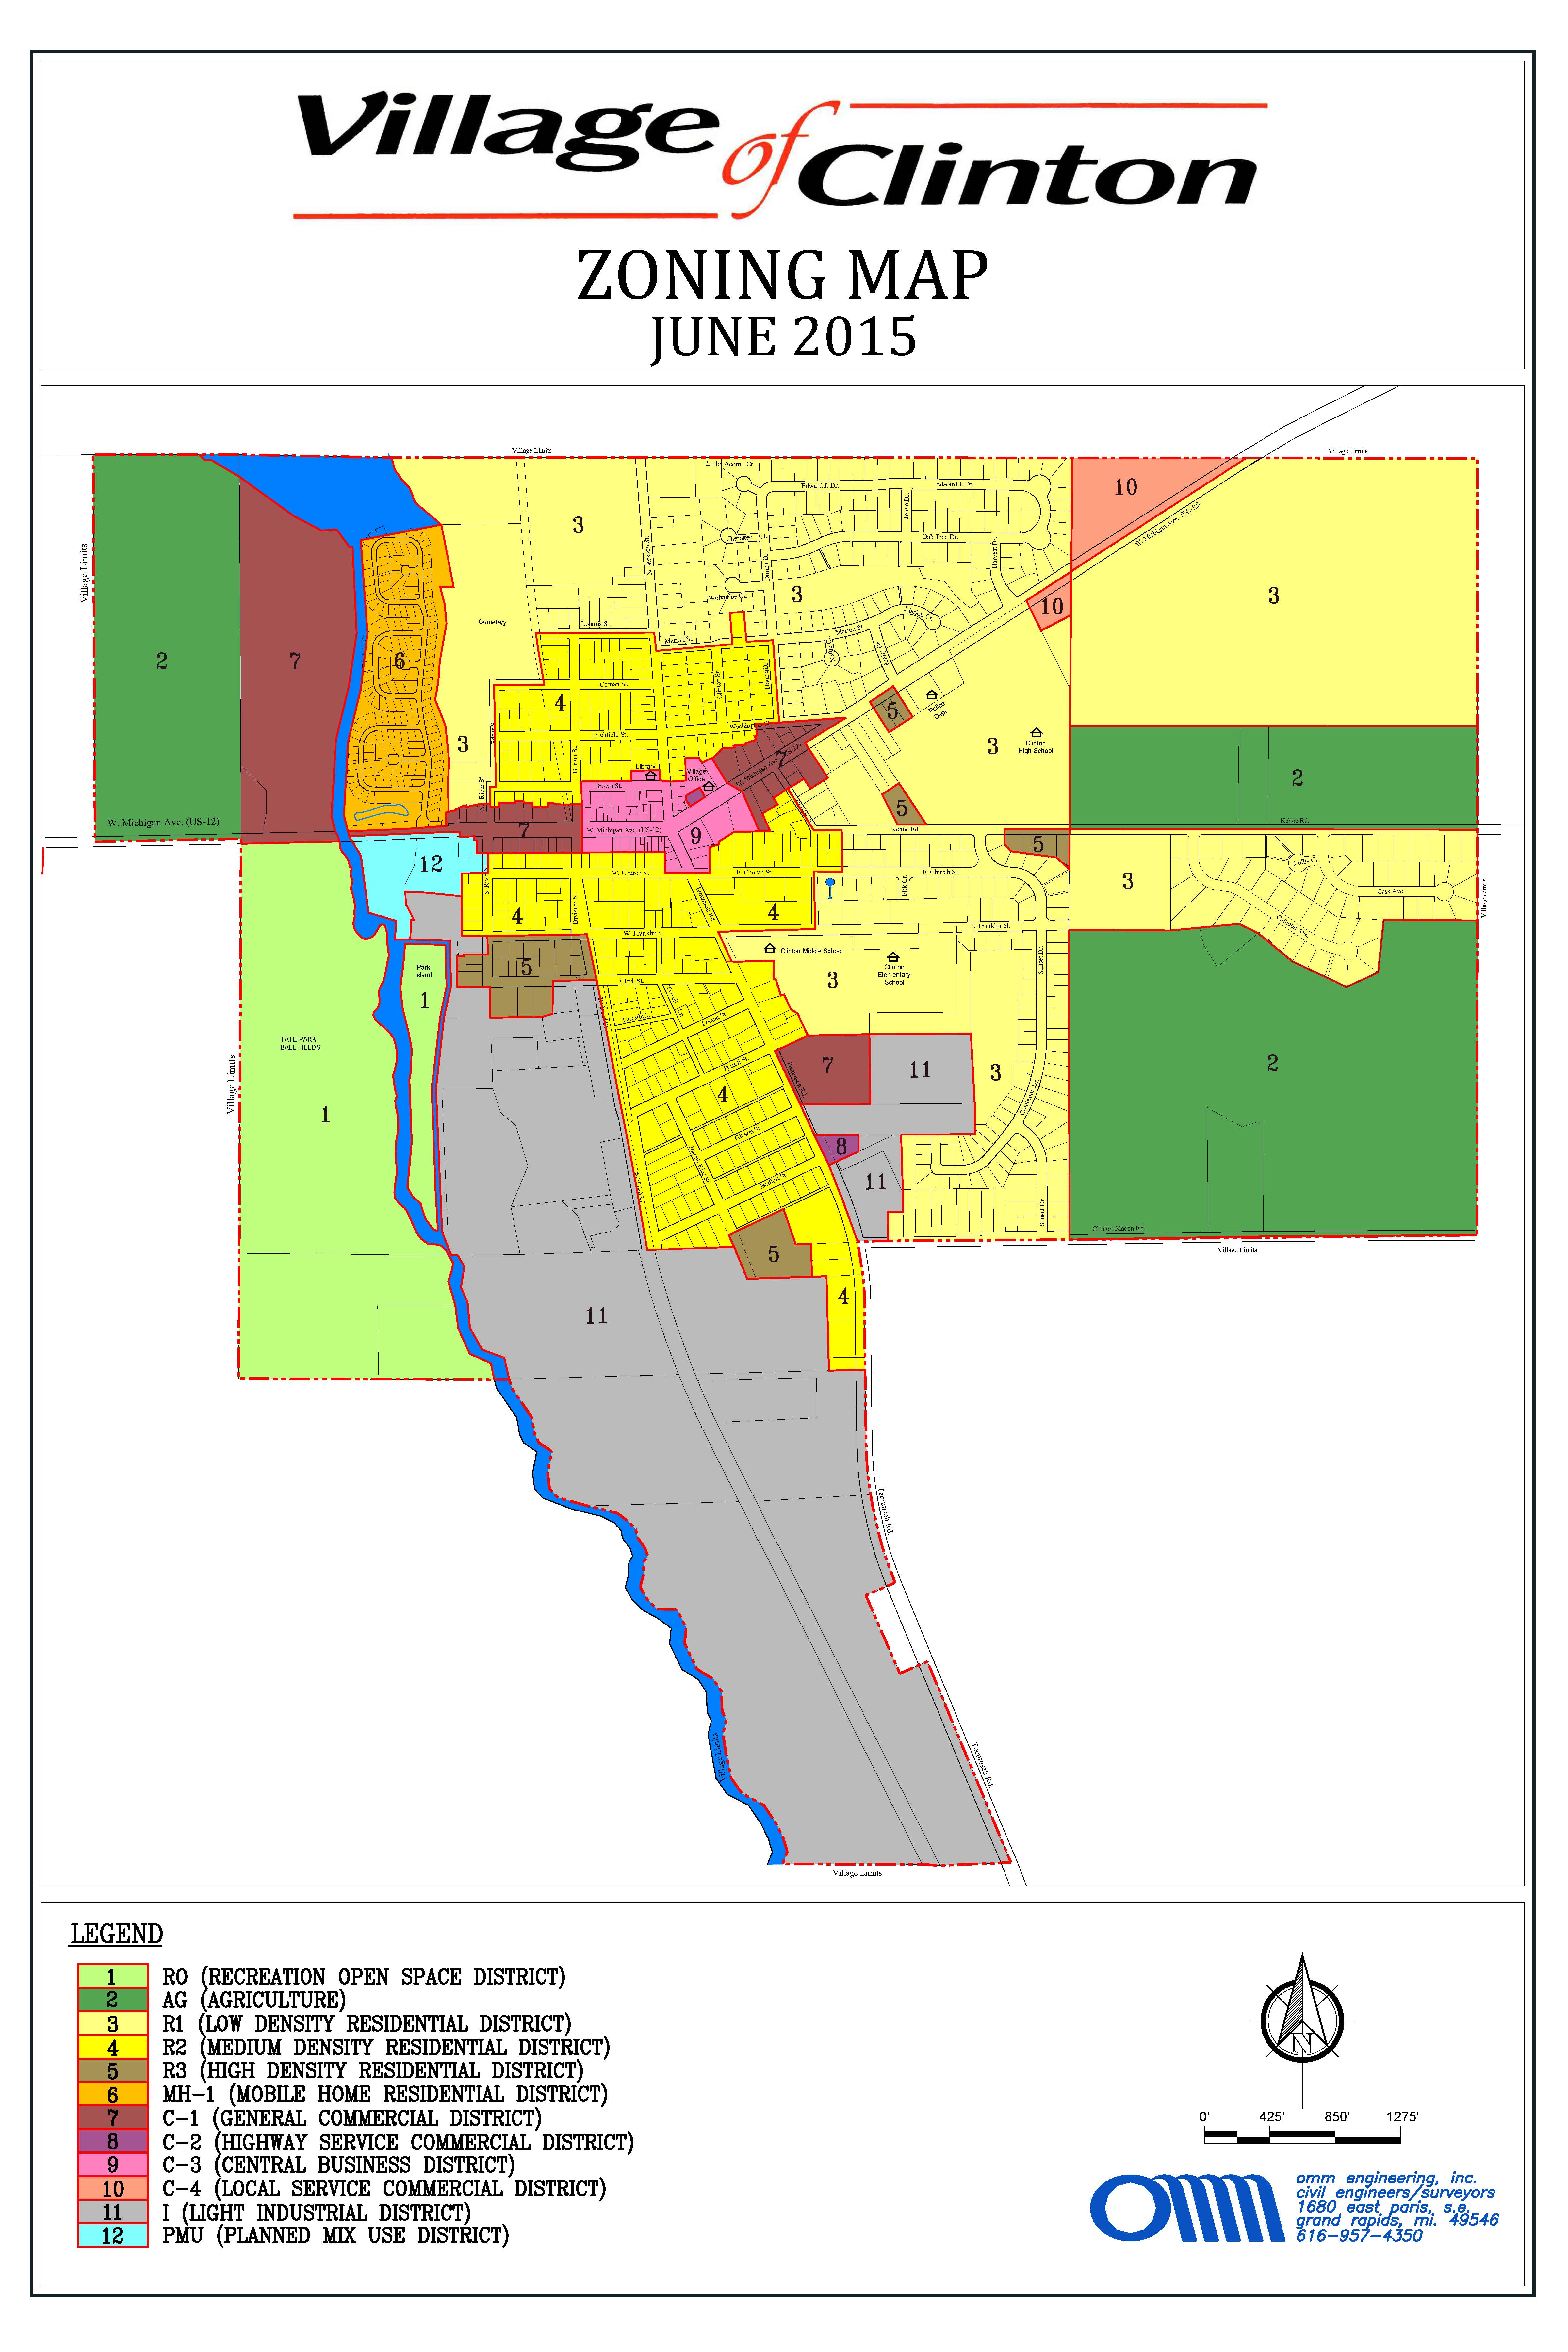 Clinton Zoning Map June 2015